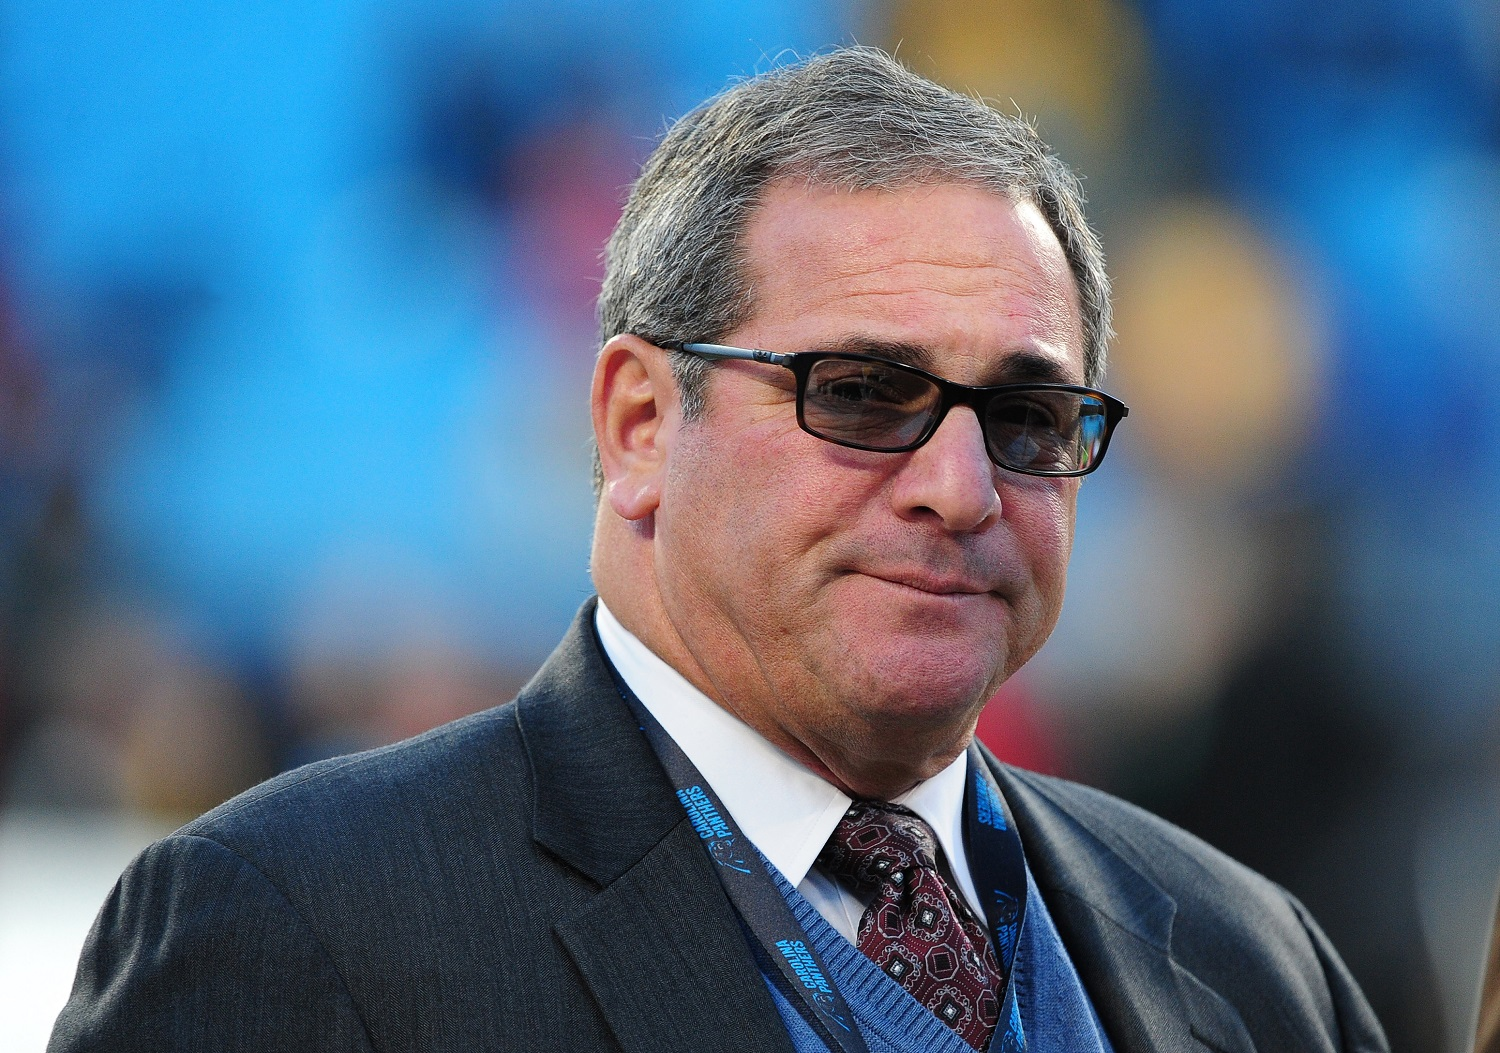 Giants GM Dave Gettleman Made the Most Courageous Move in the NFL Draft